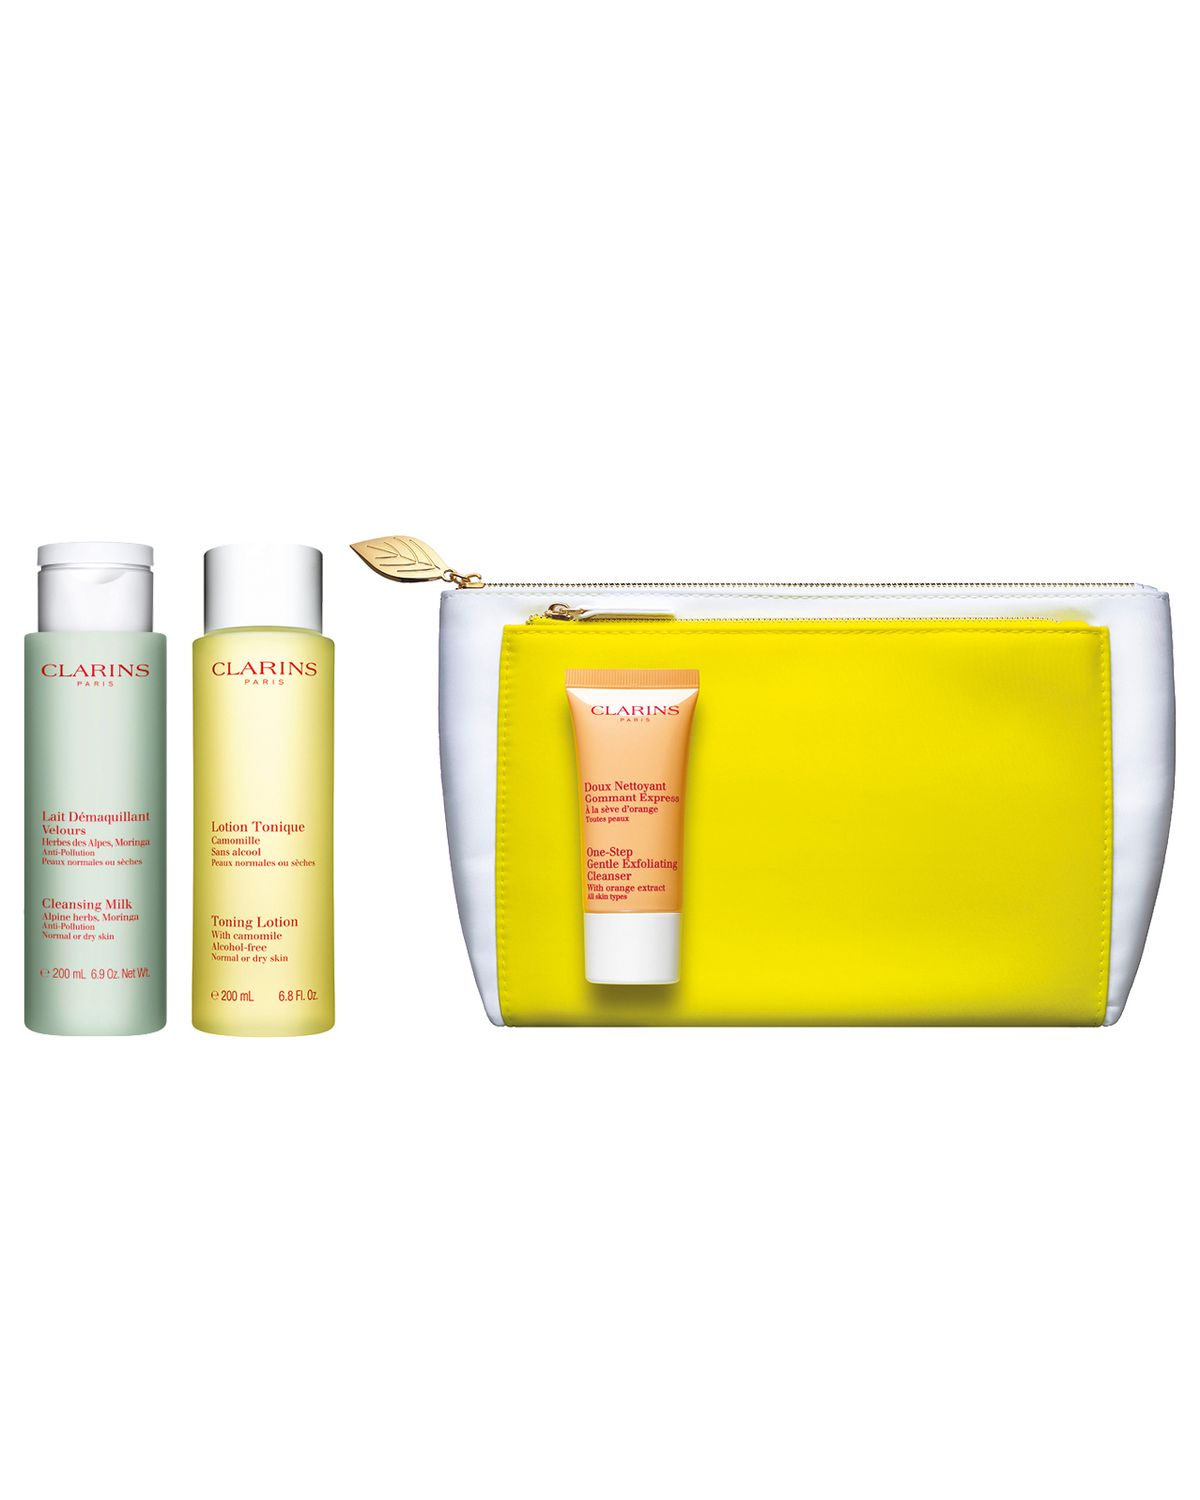 Clarins Daily Detox Normal to Dry Skin, $51 (usually $60)